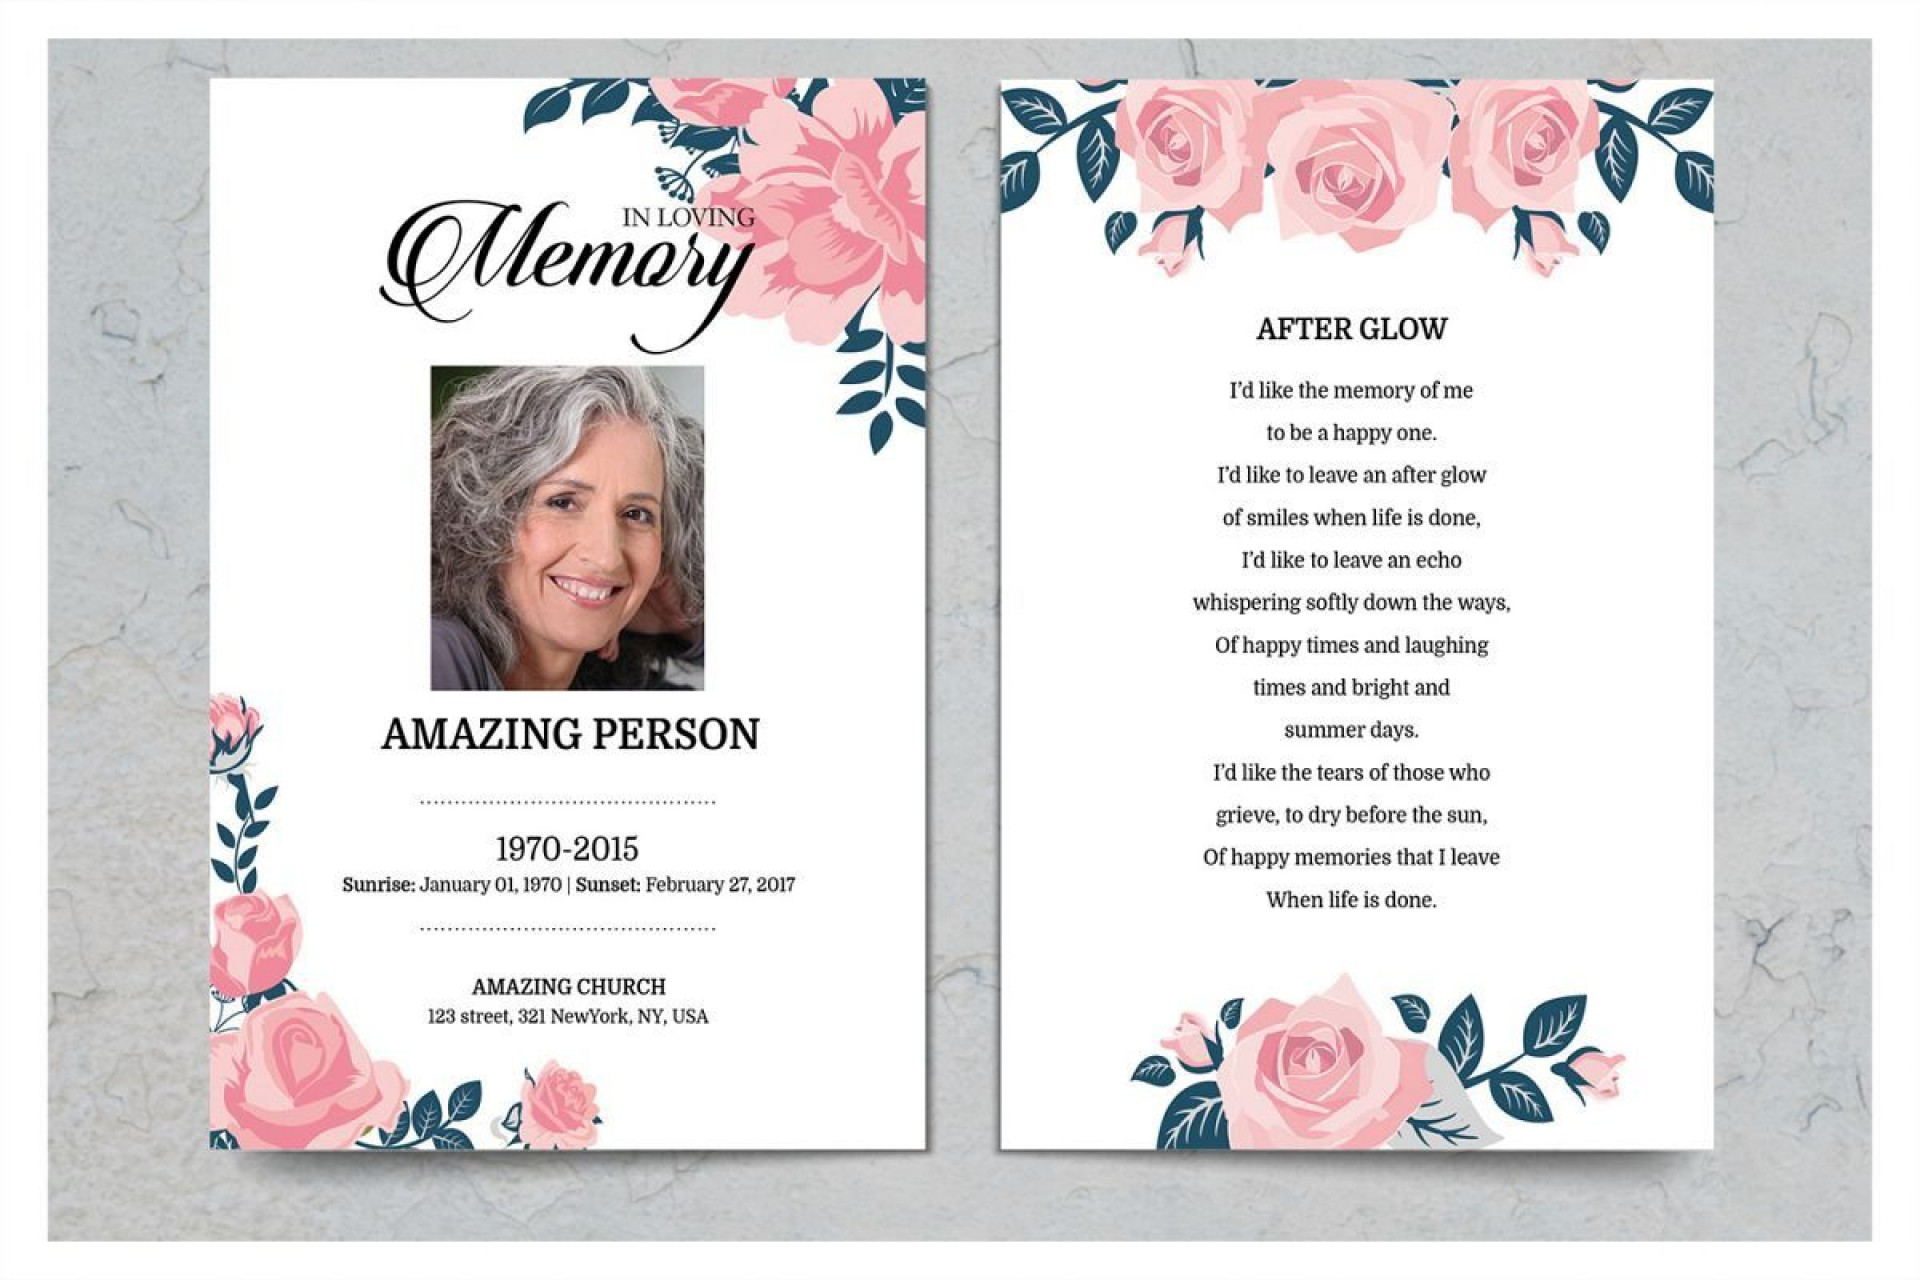 004 Unusual Funeral Prayer Card Template High Definition  Templates For Word Free1920